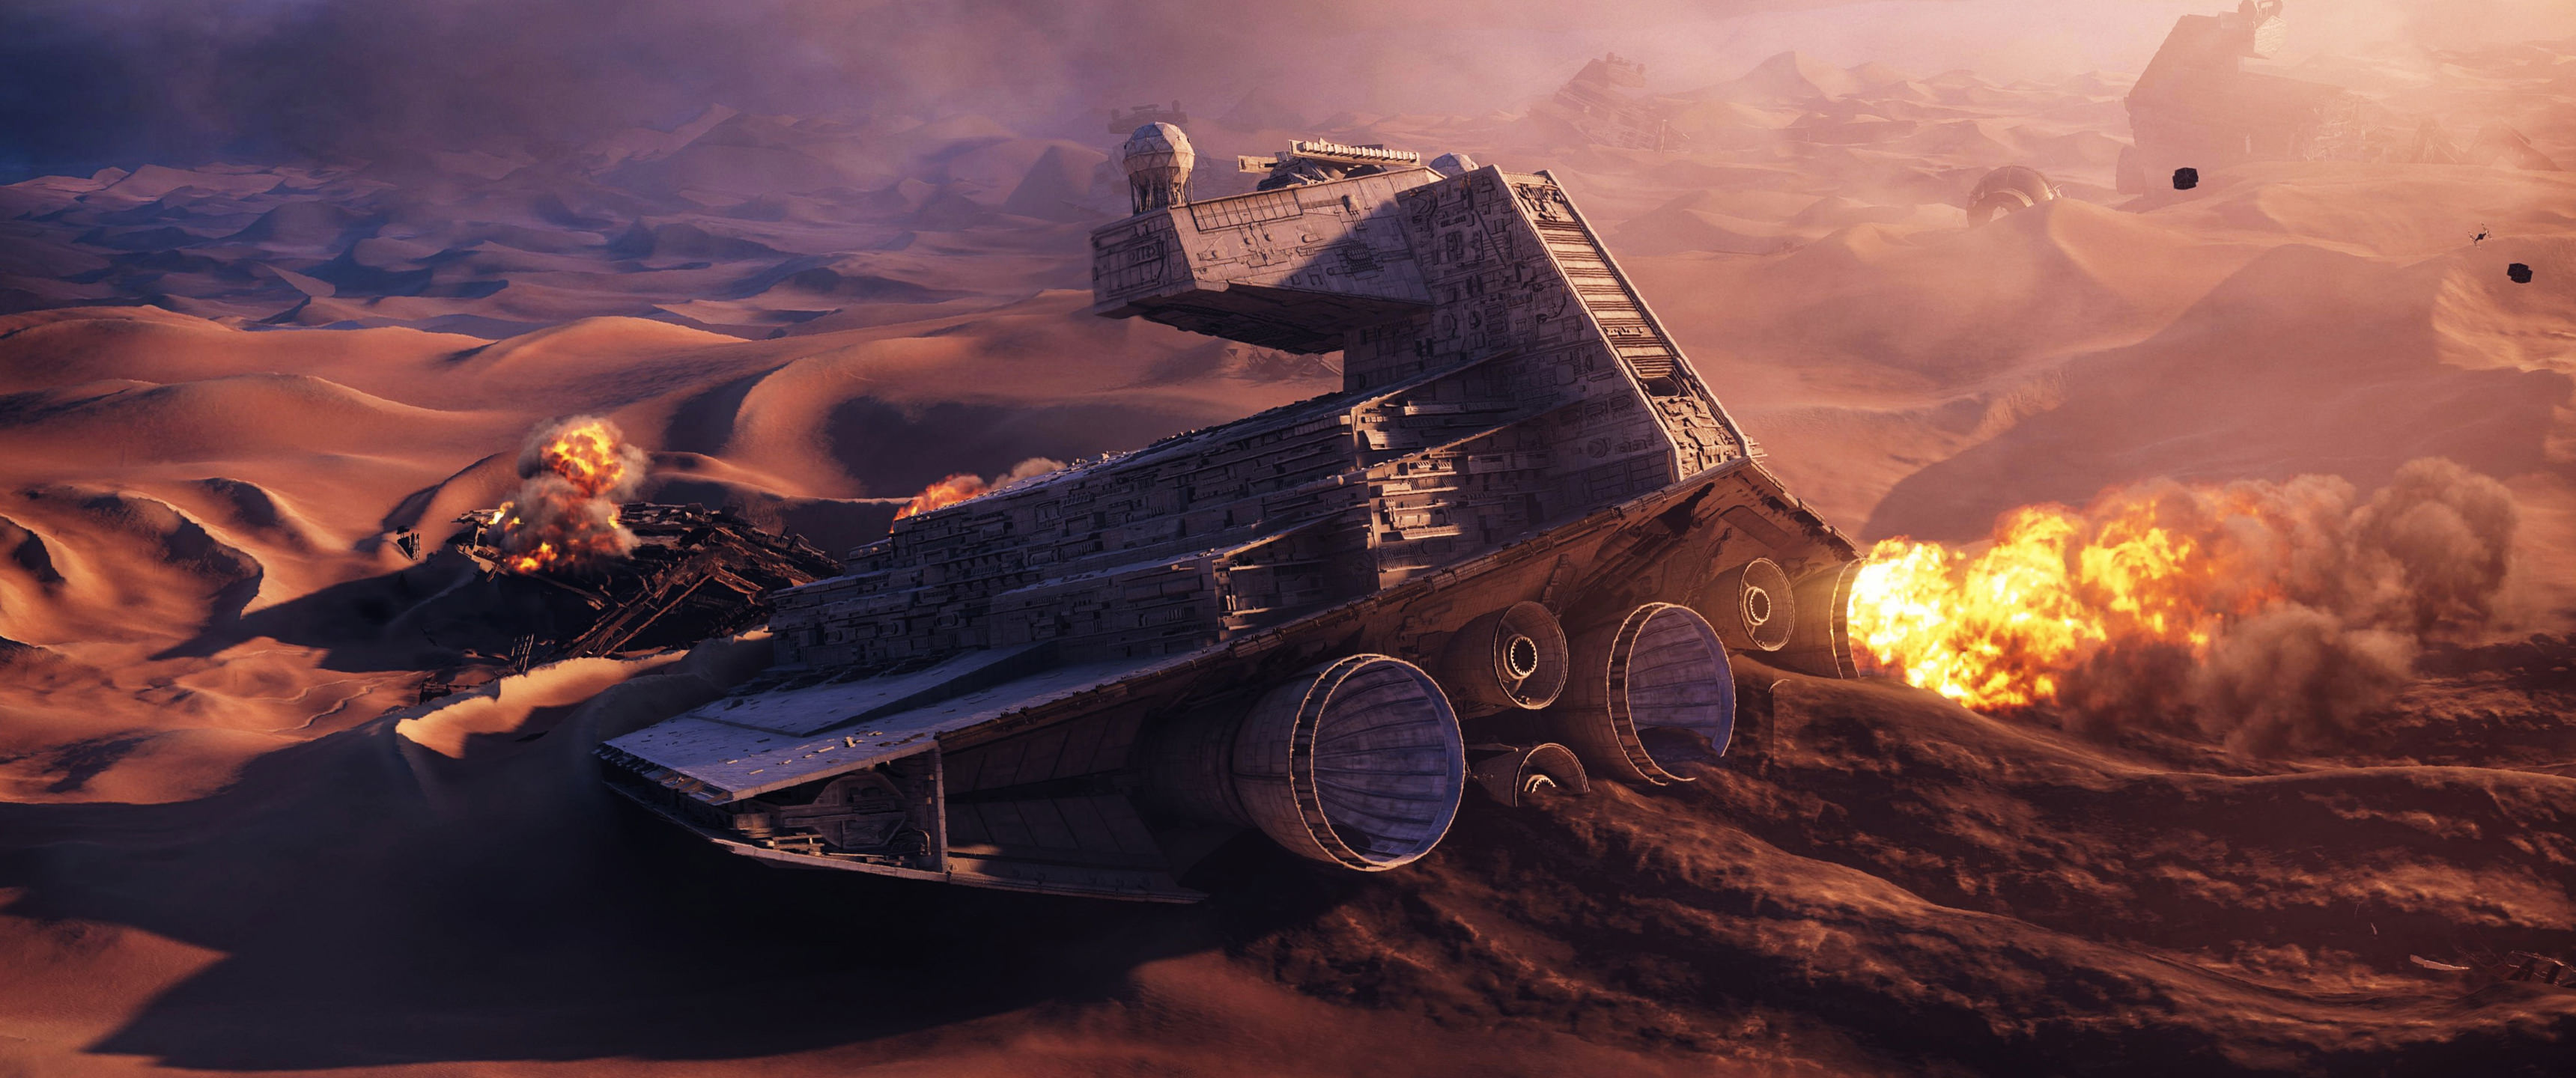 3440x1440 Wallpaper Star Wars Posted By Michelle Johnson